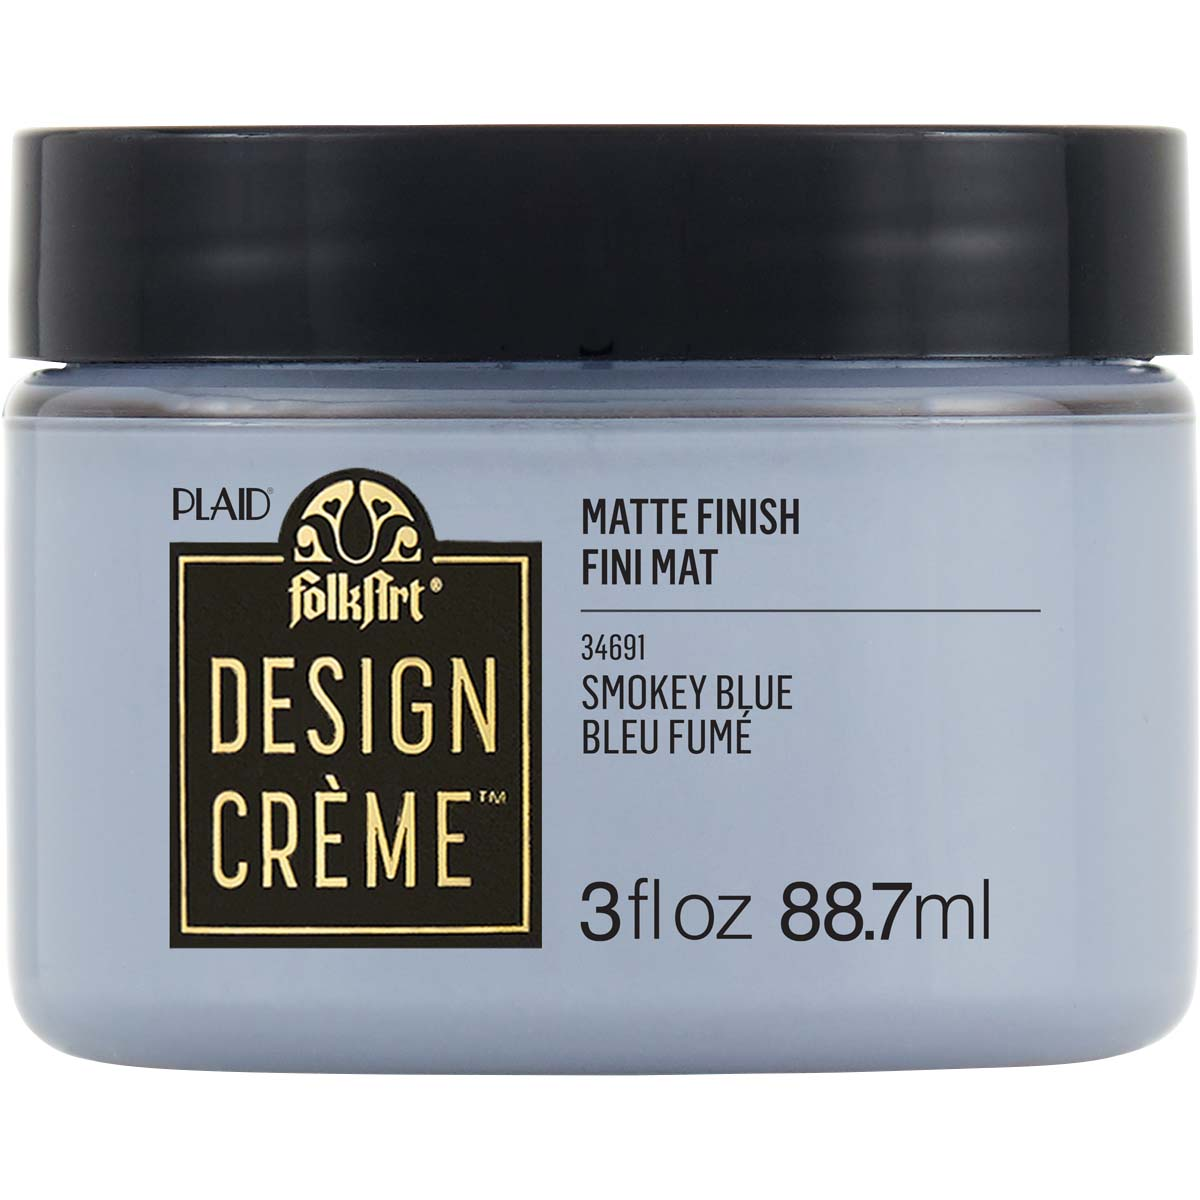 FolkArt ® Design Creme™ - Smokey Blue, 3 oz. - 34691